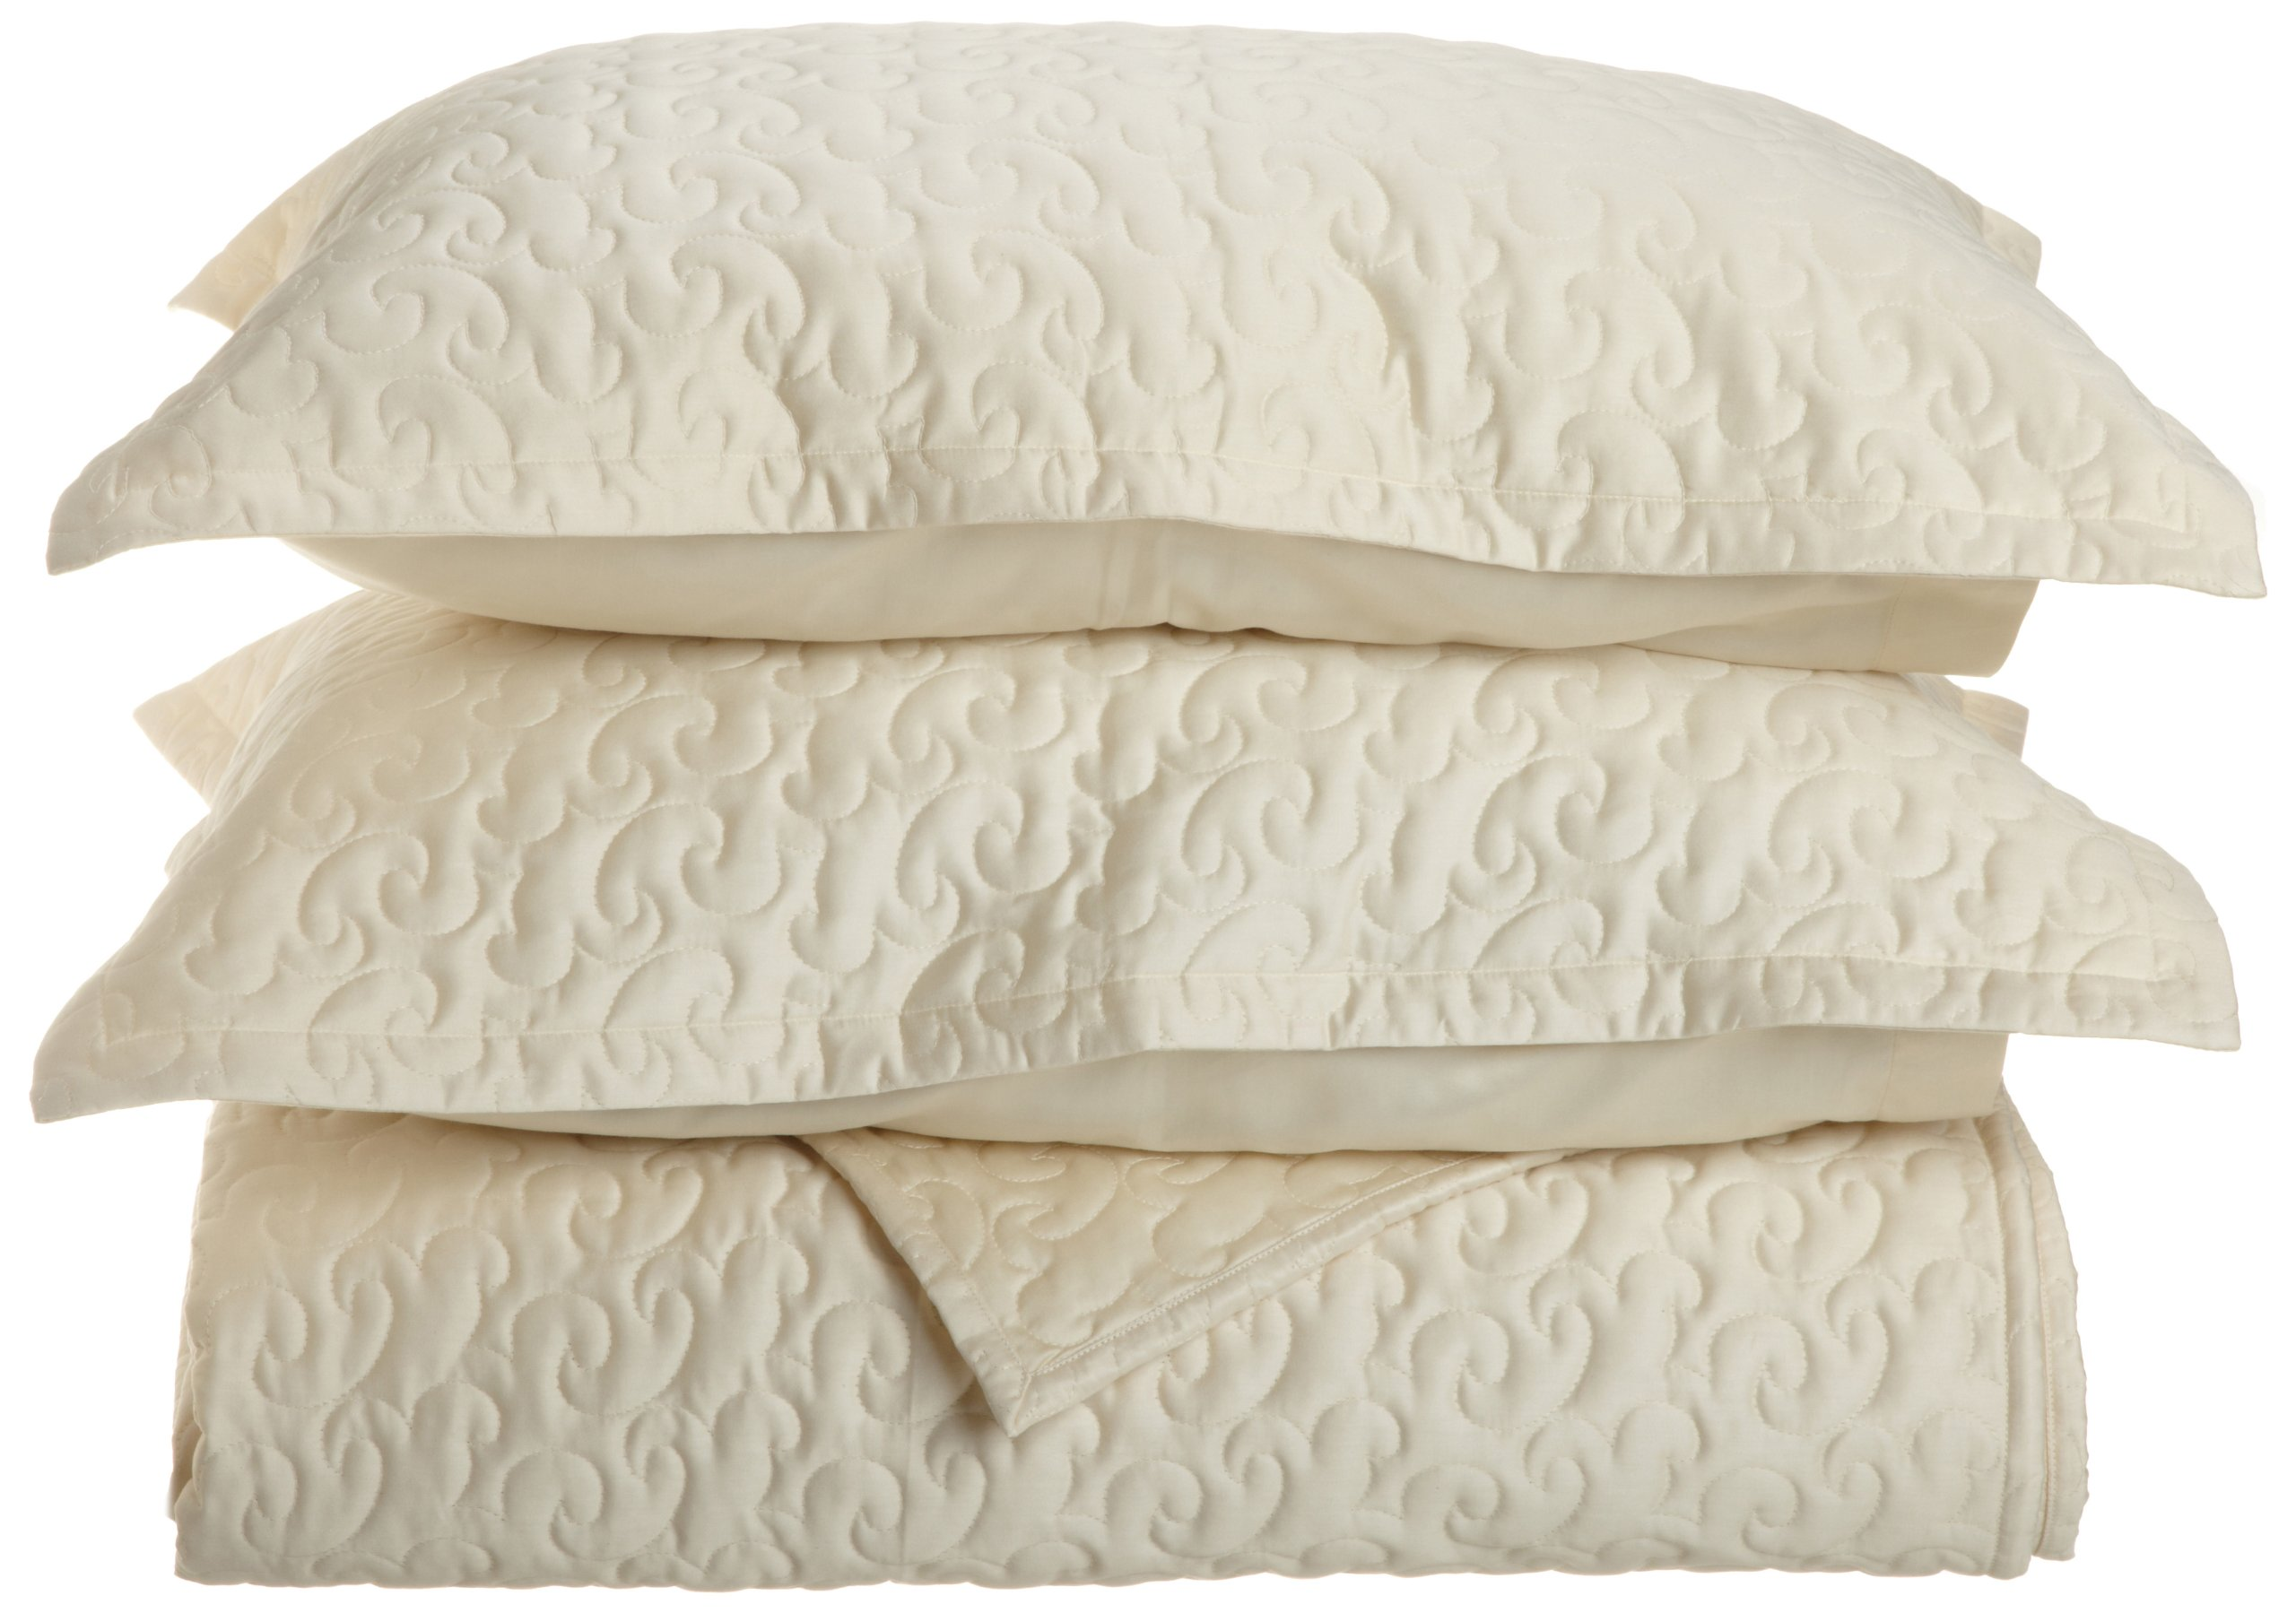 Tuscany Fine Italian Linens Egyptian Cotton Quilted Coverlet Set, Queen, Ecru